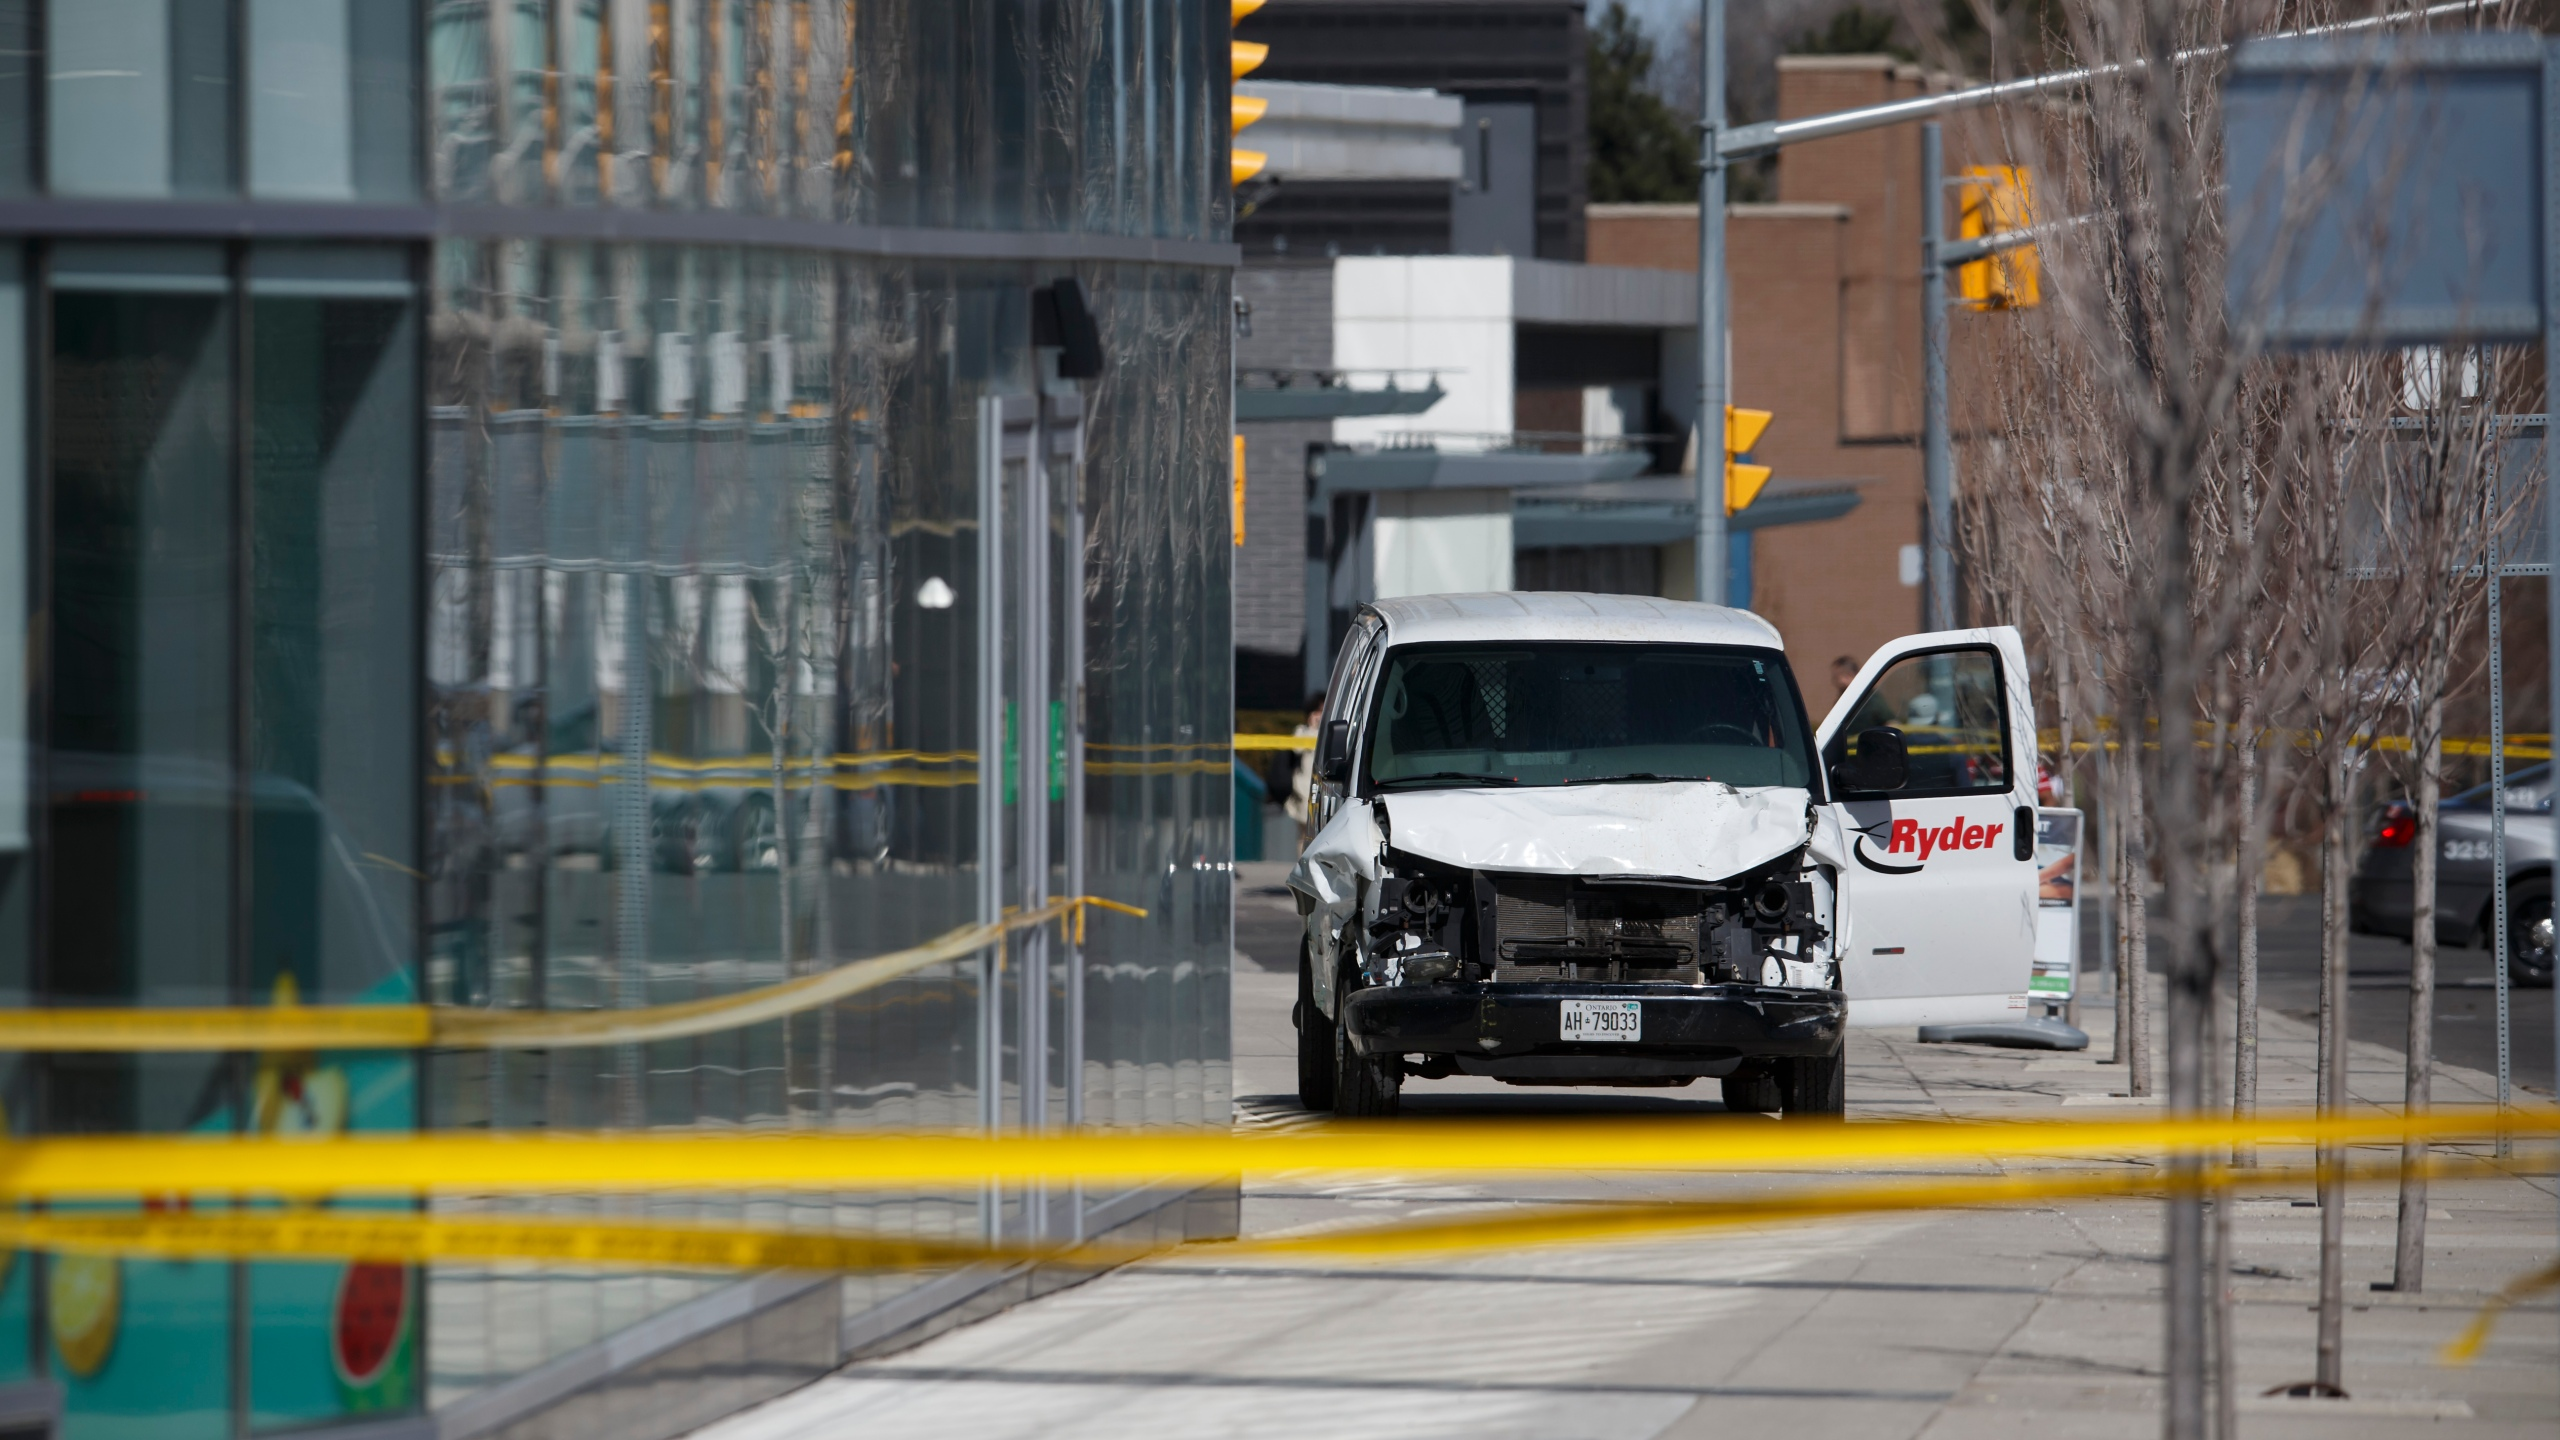 Police inspect a van suspected of mowing down pedestrians in Toronto, Ontario, Canada, on April 23, 2018. (Credit: Cole Burston/Getty Images)